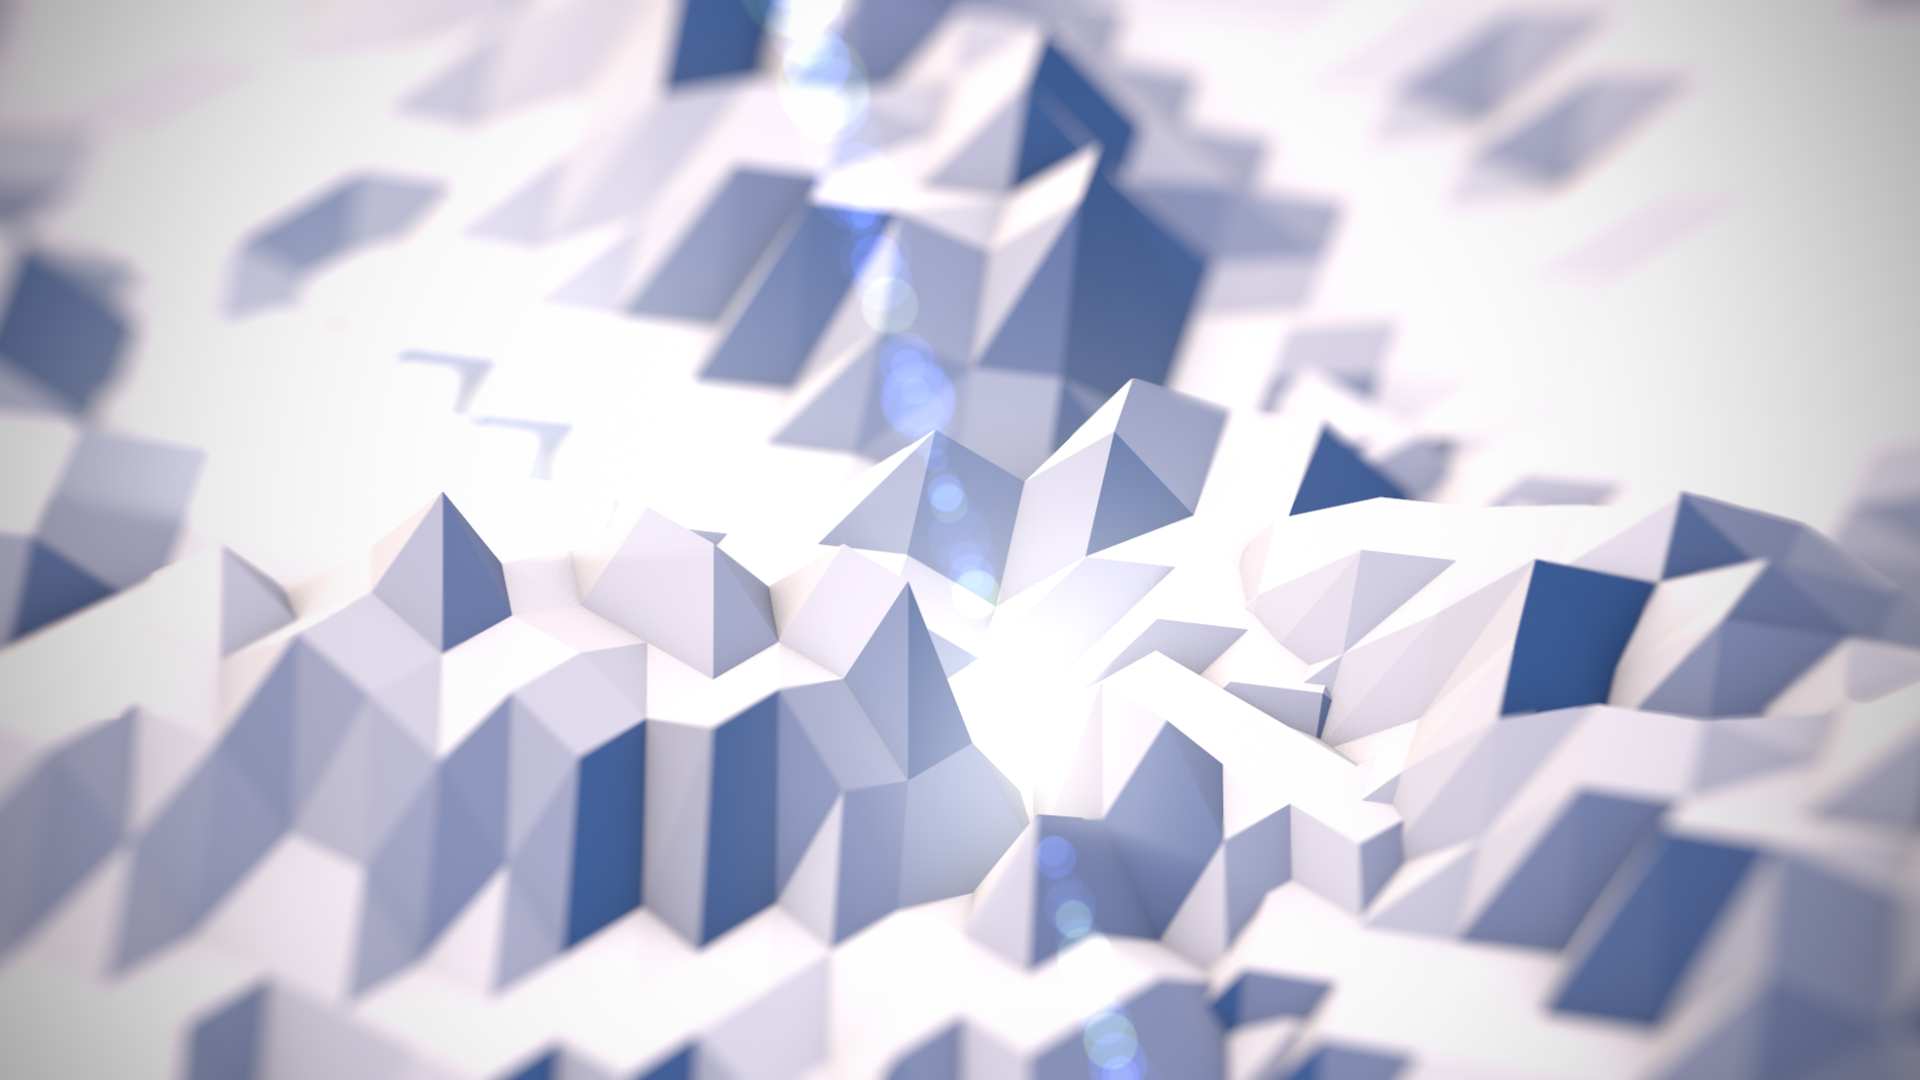 Amazing Wallpaper Mountain Polygon - low_polygon_snowy_mountains_by_patrickroelofs-d7lwt65  Image_416452.png